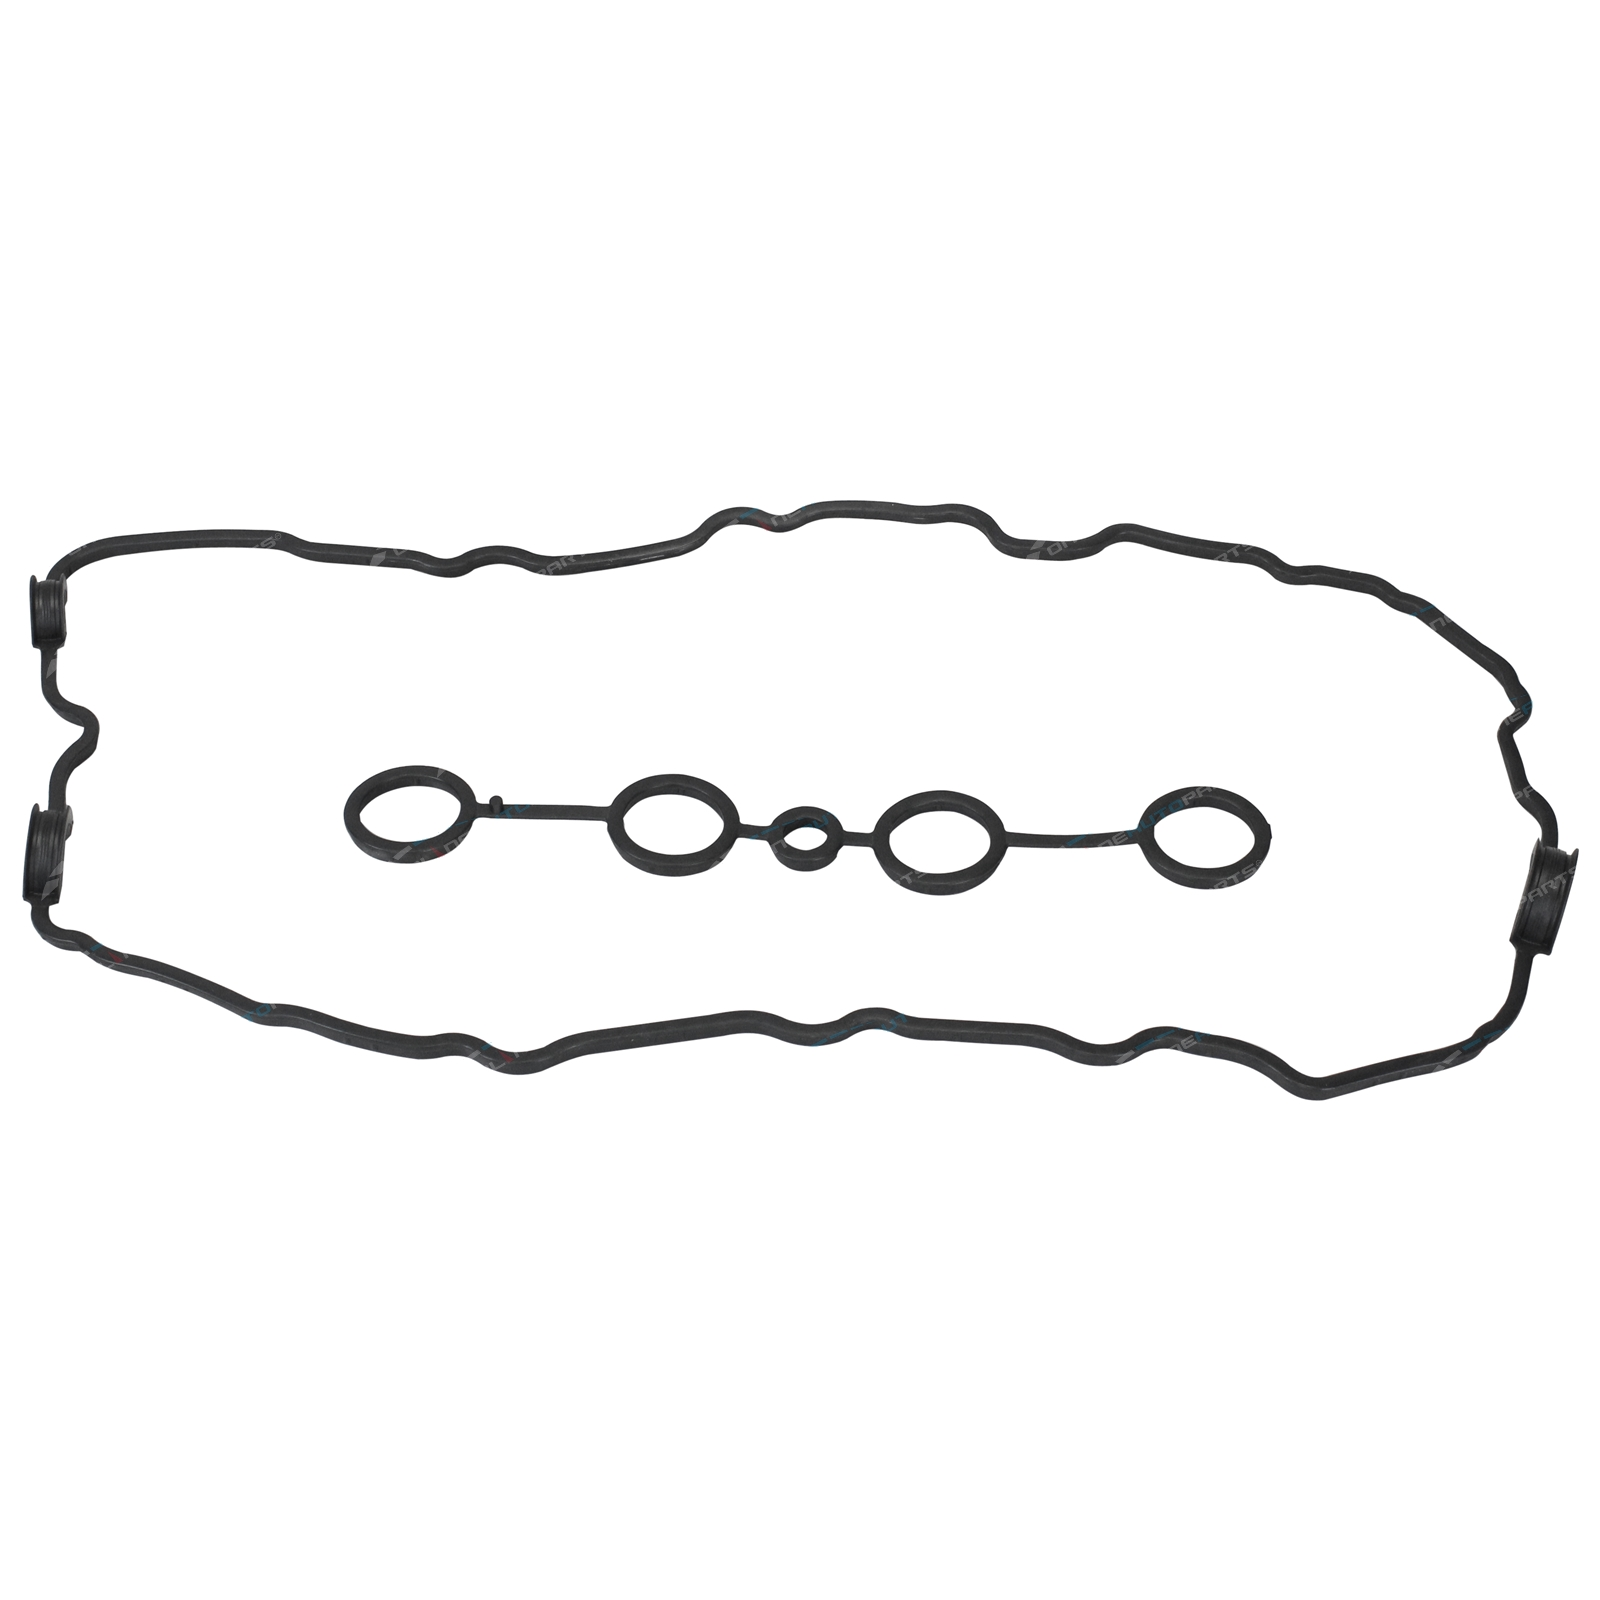 Genuine Nissan Rocker Valve Cover Gasket Set 200sx Silvia